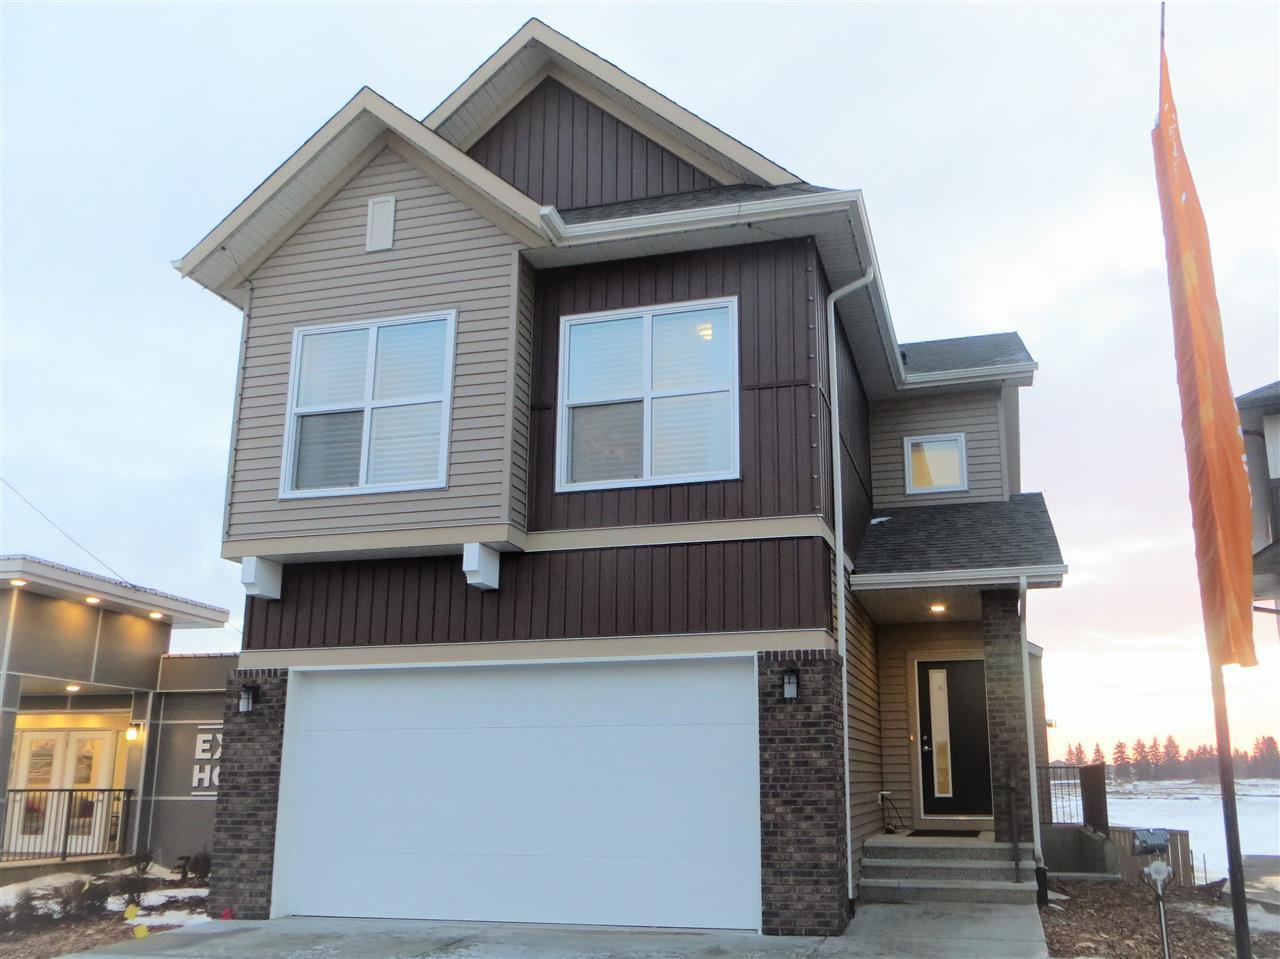 Brand new home to be built, excellent value in the Arbours of Keswick! Construction has not commenced, anticipate 7 months to build. Pick your colors and options to personalize your new home (note the interior photos are not an exact representation, options chosen will be different as the pictures are of a showhome). Measured to RMS standards. The chef's kitchen with clean lines features maple cabinets with choice of stain, island, pantry, and equipped with stainless steel appliances.  The upper level has a bonus room, 3 bedrooms including the master bedroom with walk in closet and ensuite. Laundry area is also on the upper level for added convenience.  The garage is 20x22.